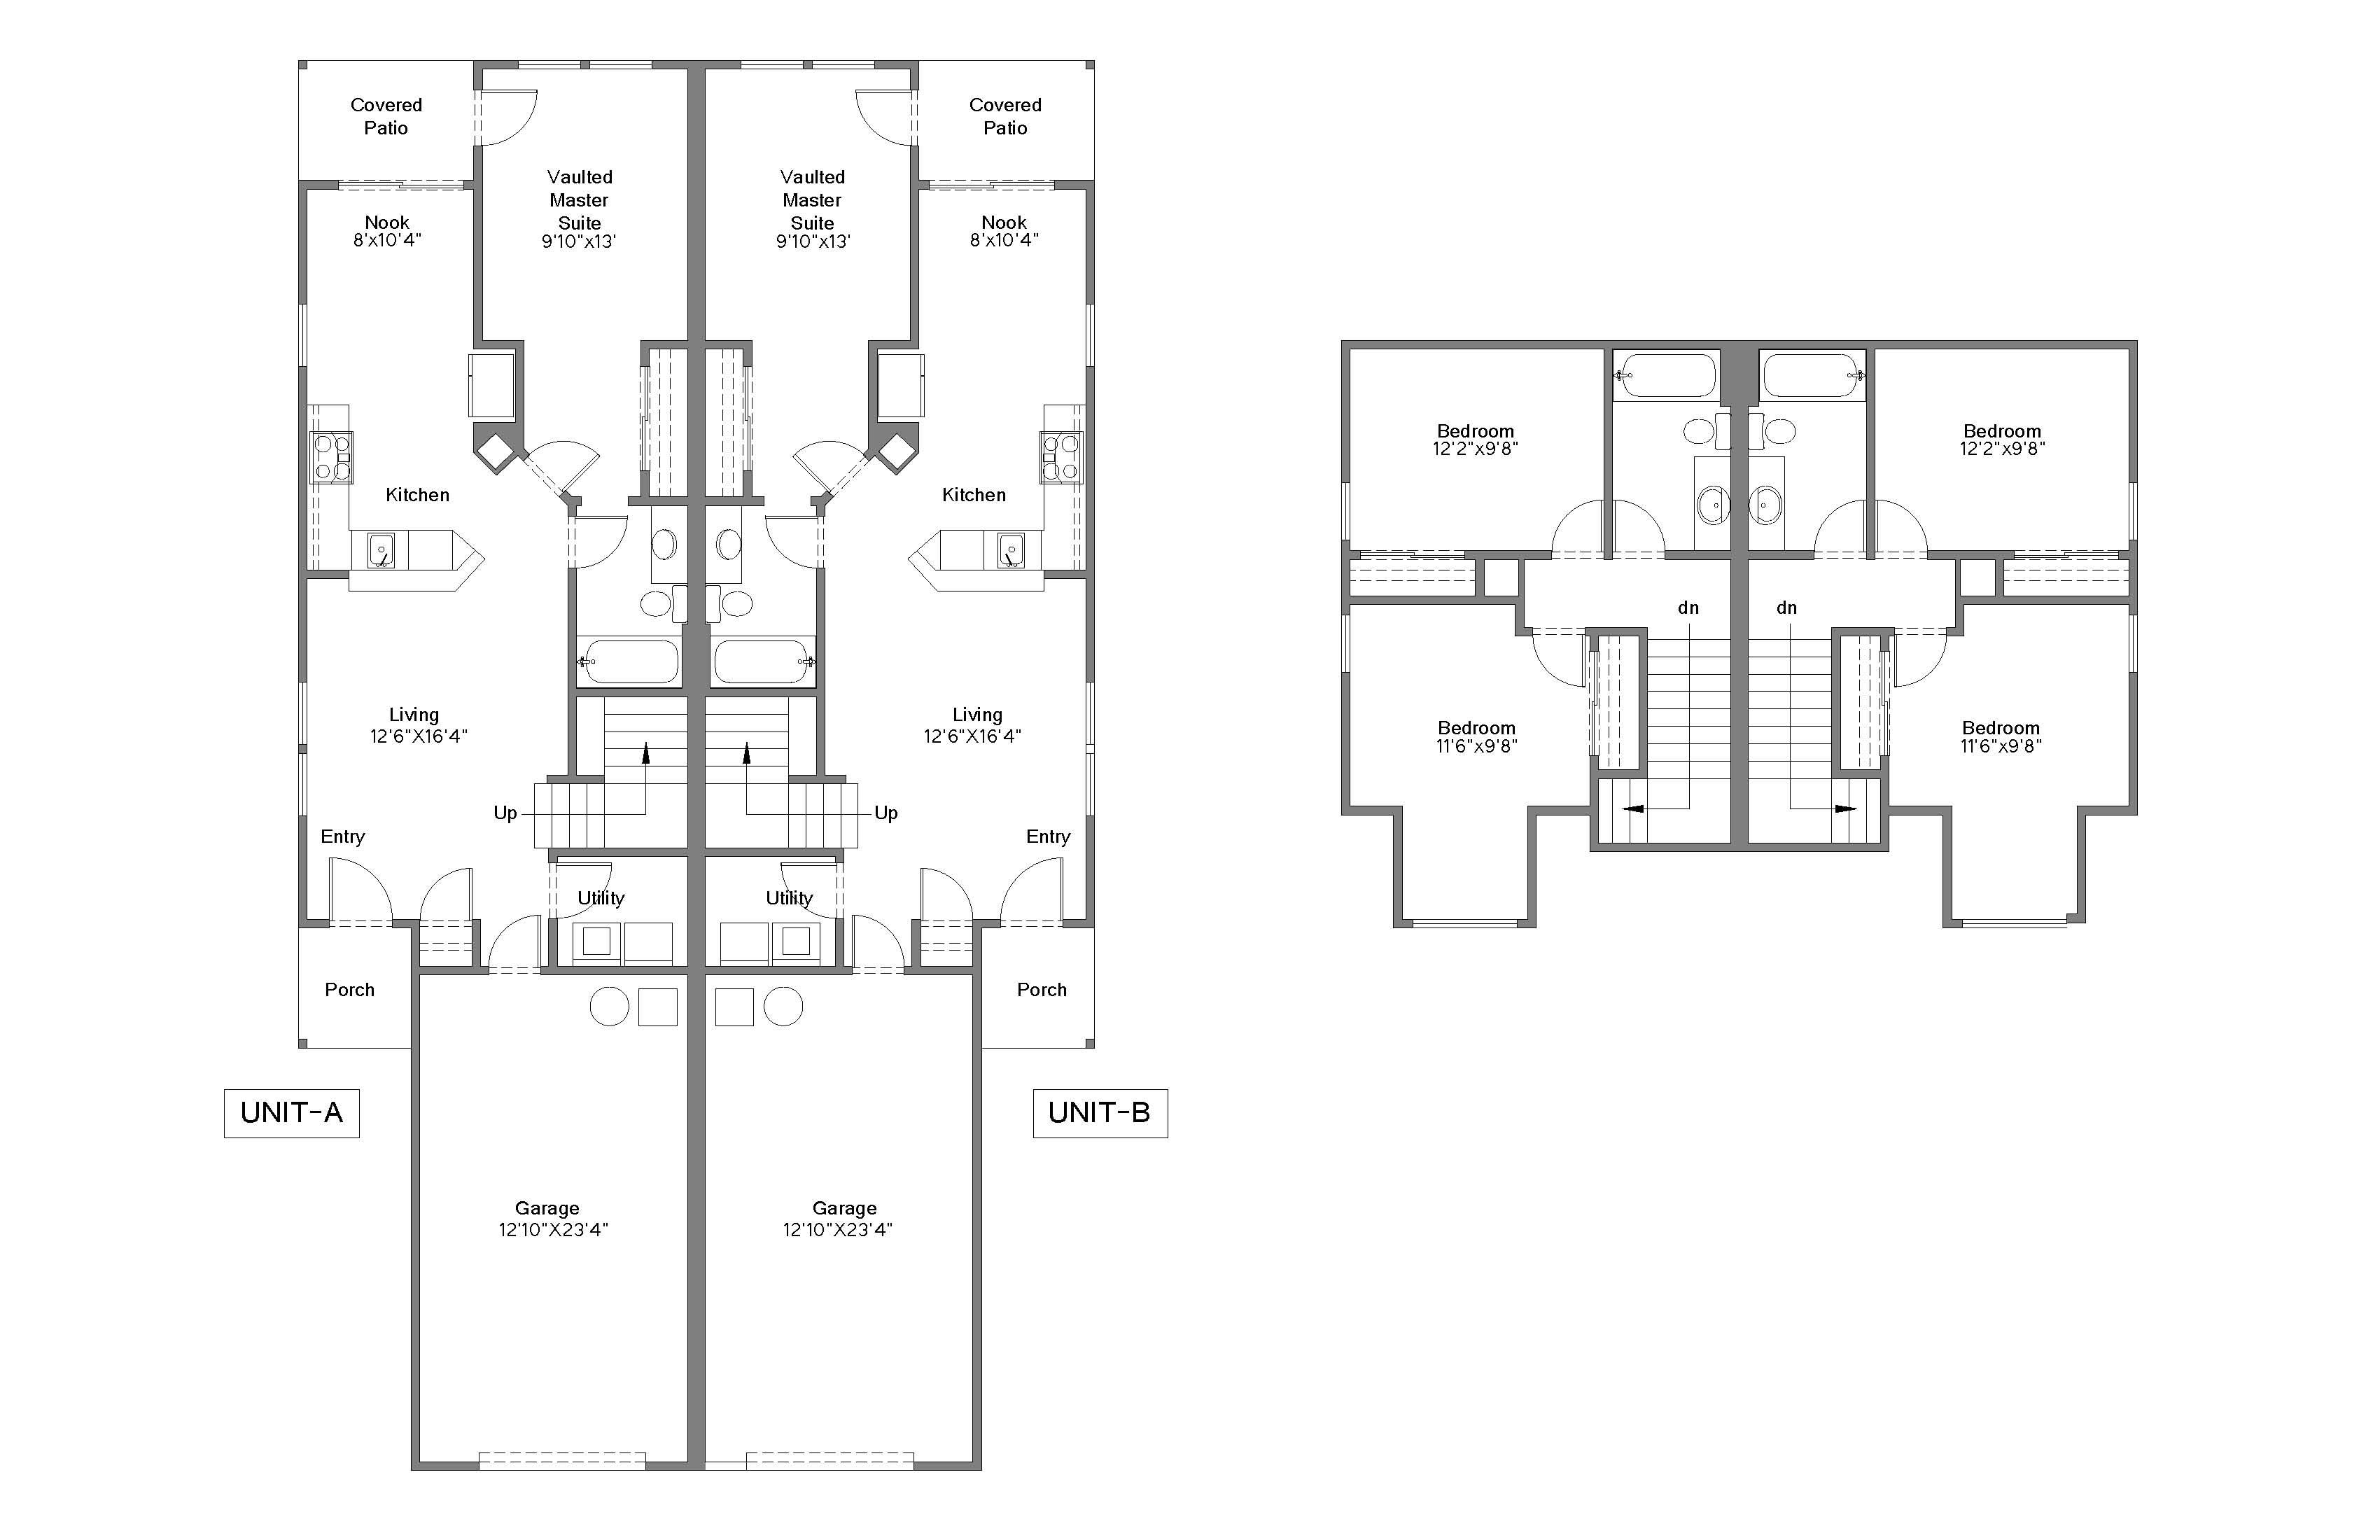 Architectural floor plan floor plan with autocad drawings Architectural floor plans